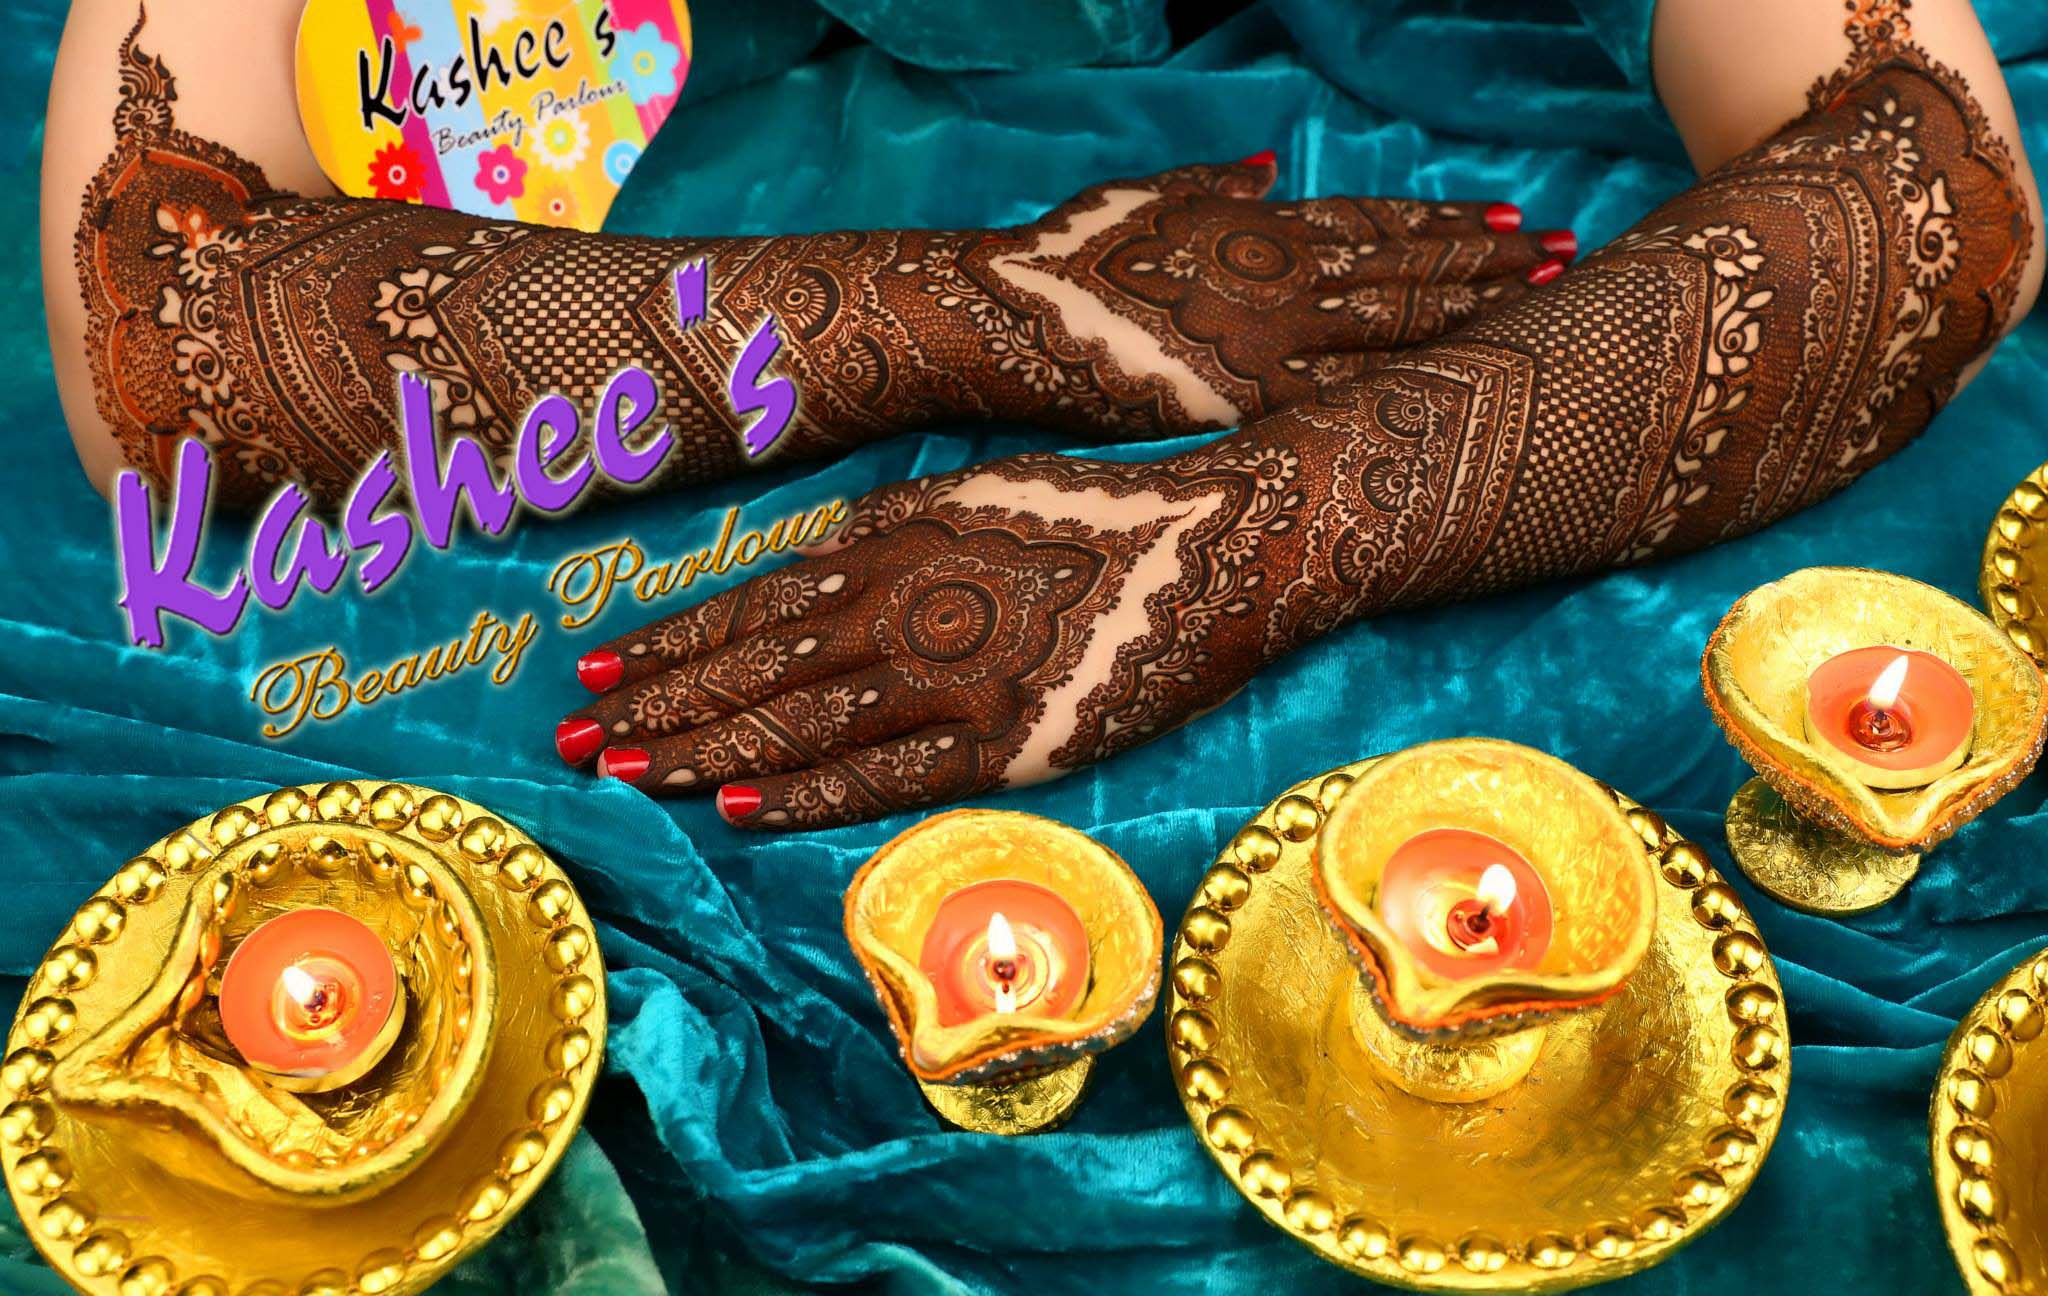 Latest mehndi designs 2016 2017 top 47 mehndi styles -  Img Src Http Styloplanet Com Wp Content Uploads 2016 03 Lovely Kashees Mehndi Designs For Girls 2016 2017 47 82x100 Jpg Alt Lovely Kashee 8217 S